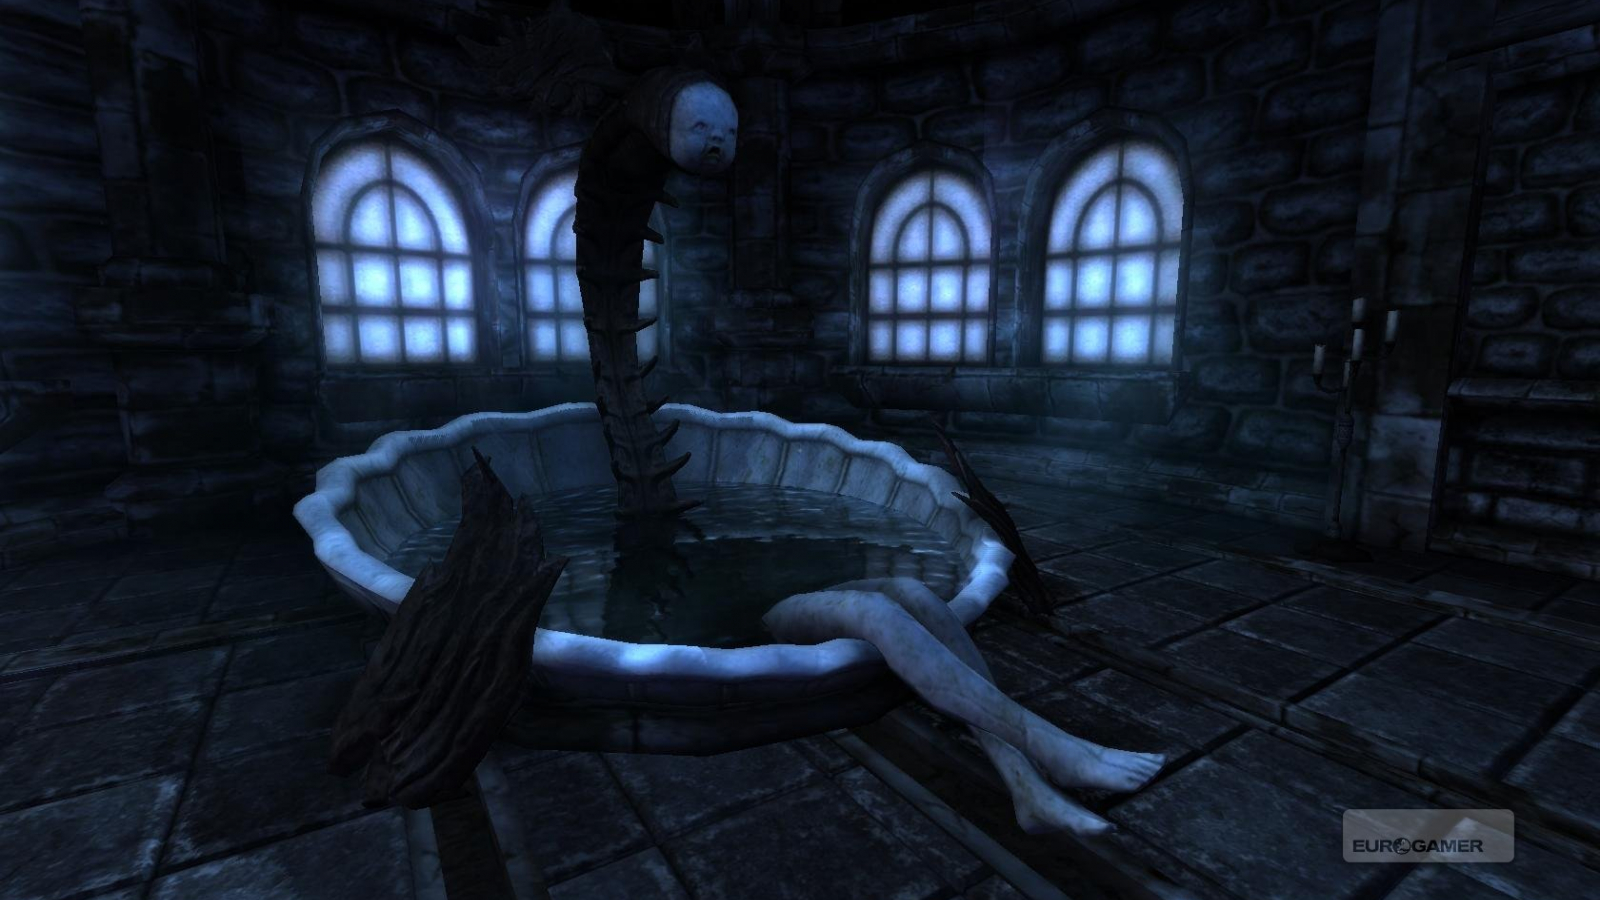 Free Download Amnesia The Dark Descent Video Game Wallpapers